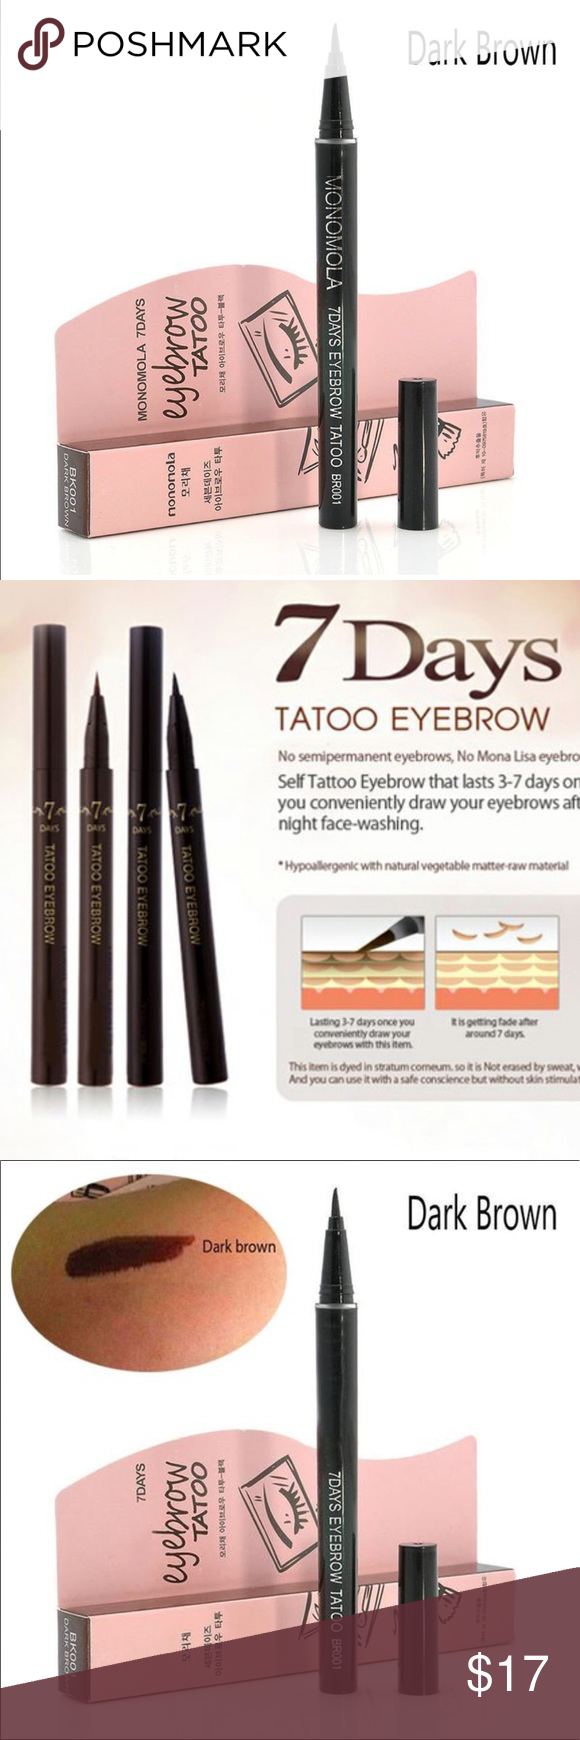 New Waterproof 7 Day Eyebrow Tattoo Pen Liner Yes New Waterproof